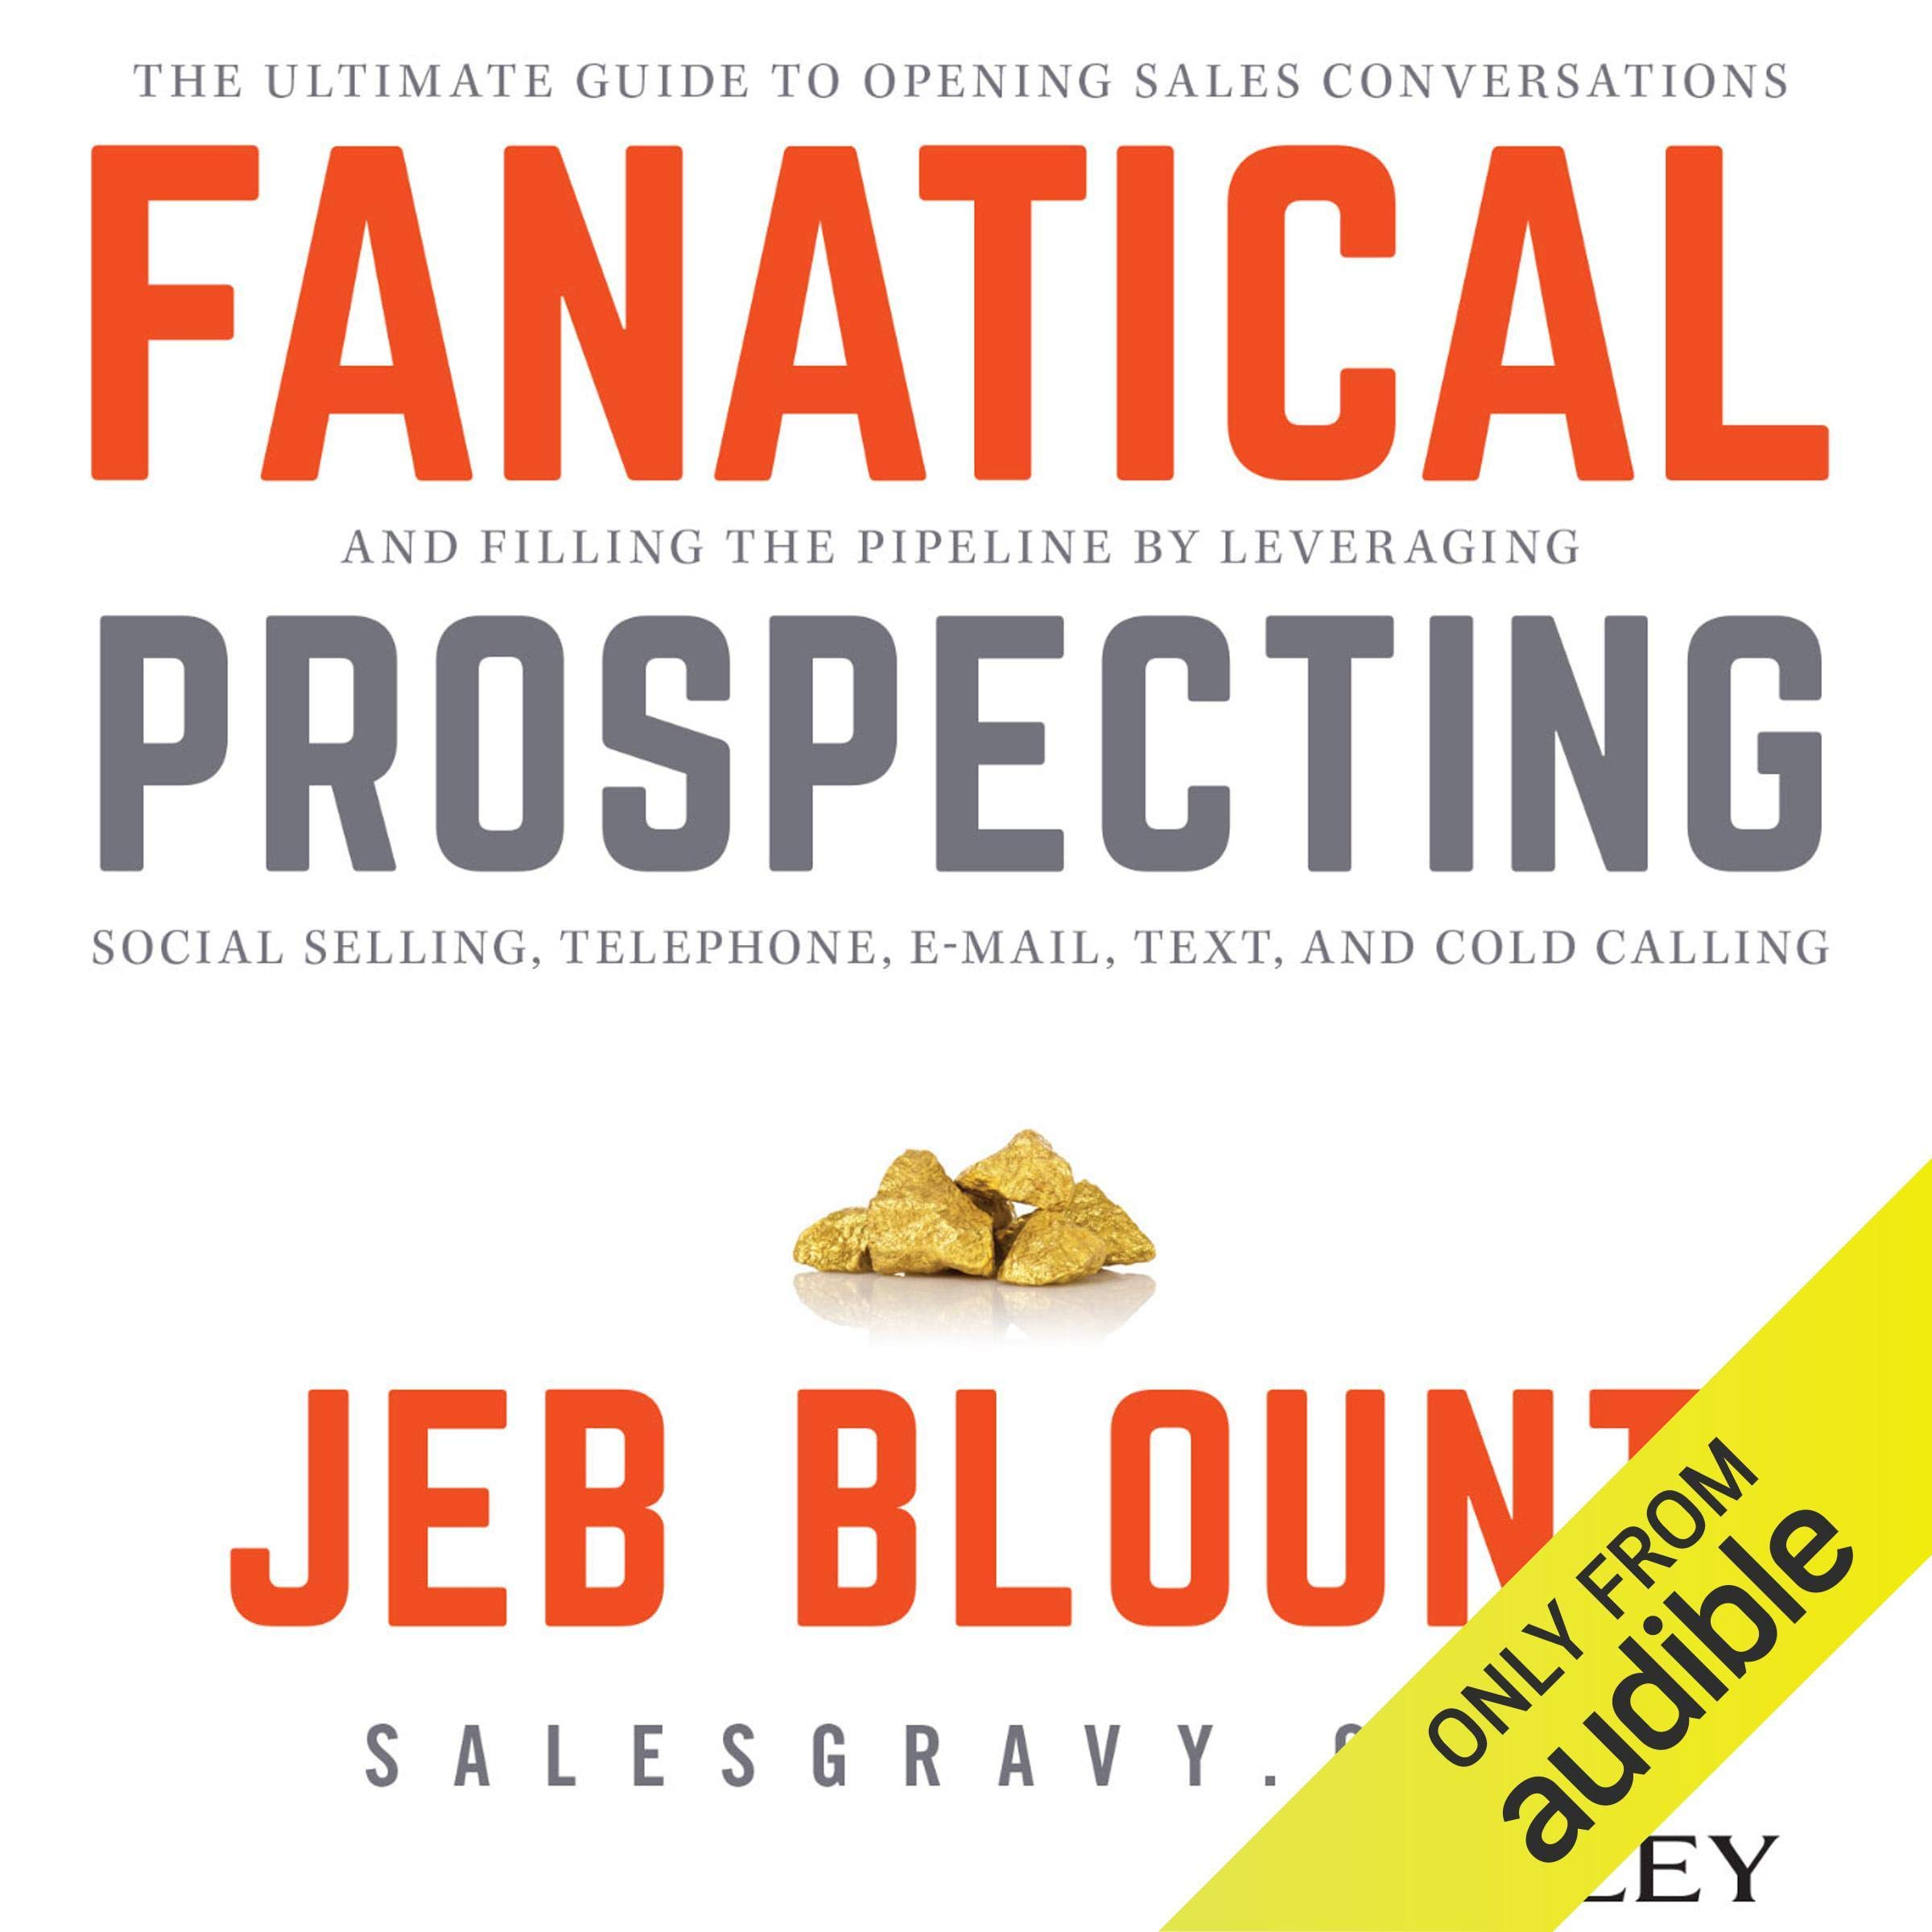 Download Fanatical Prospecting: The Ultimate Guide for Starting Sales Conversations and Filling the Pipeline by Leveraging Social S...